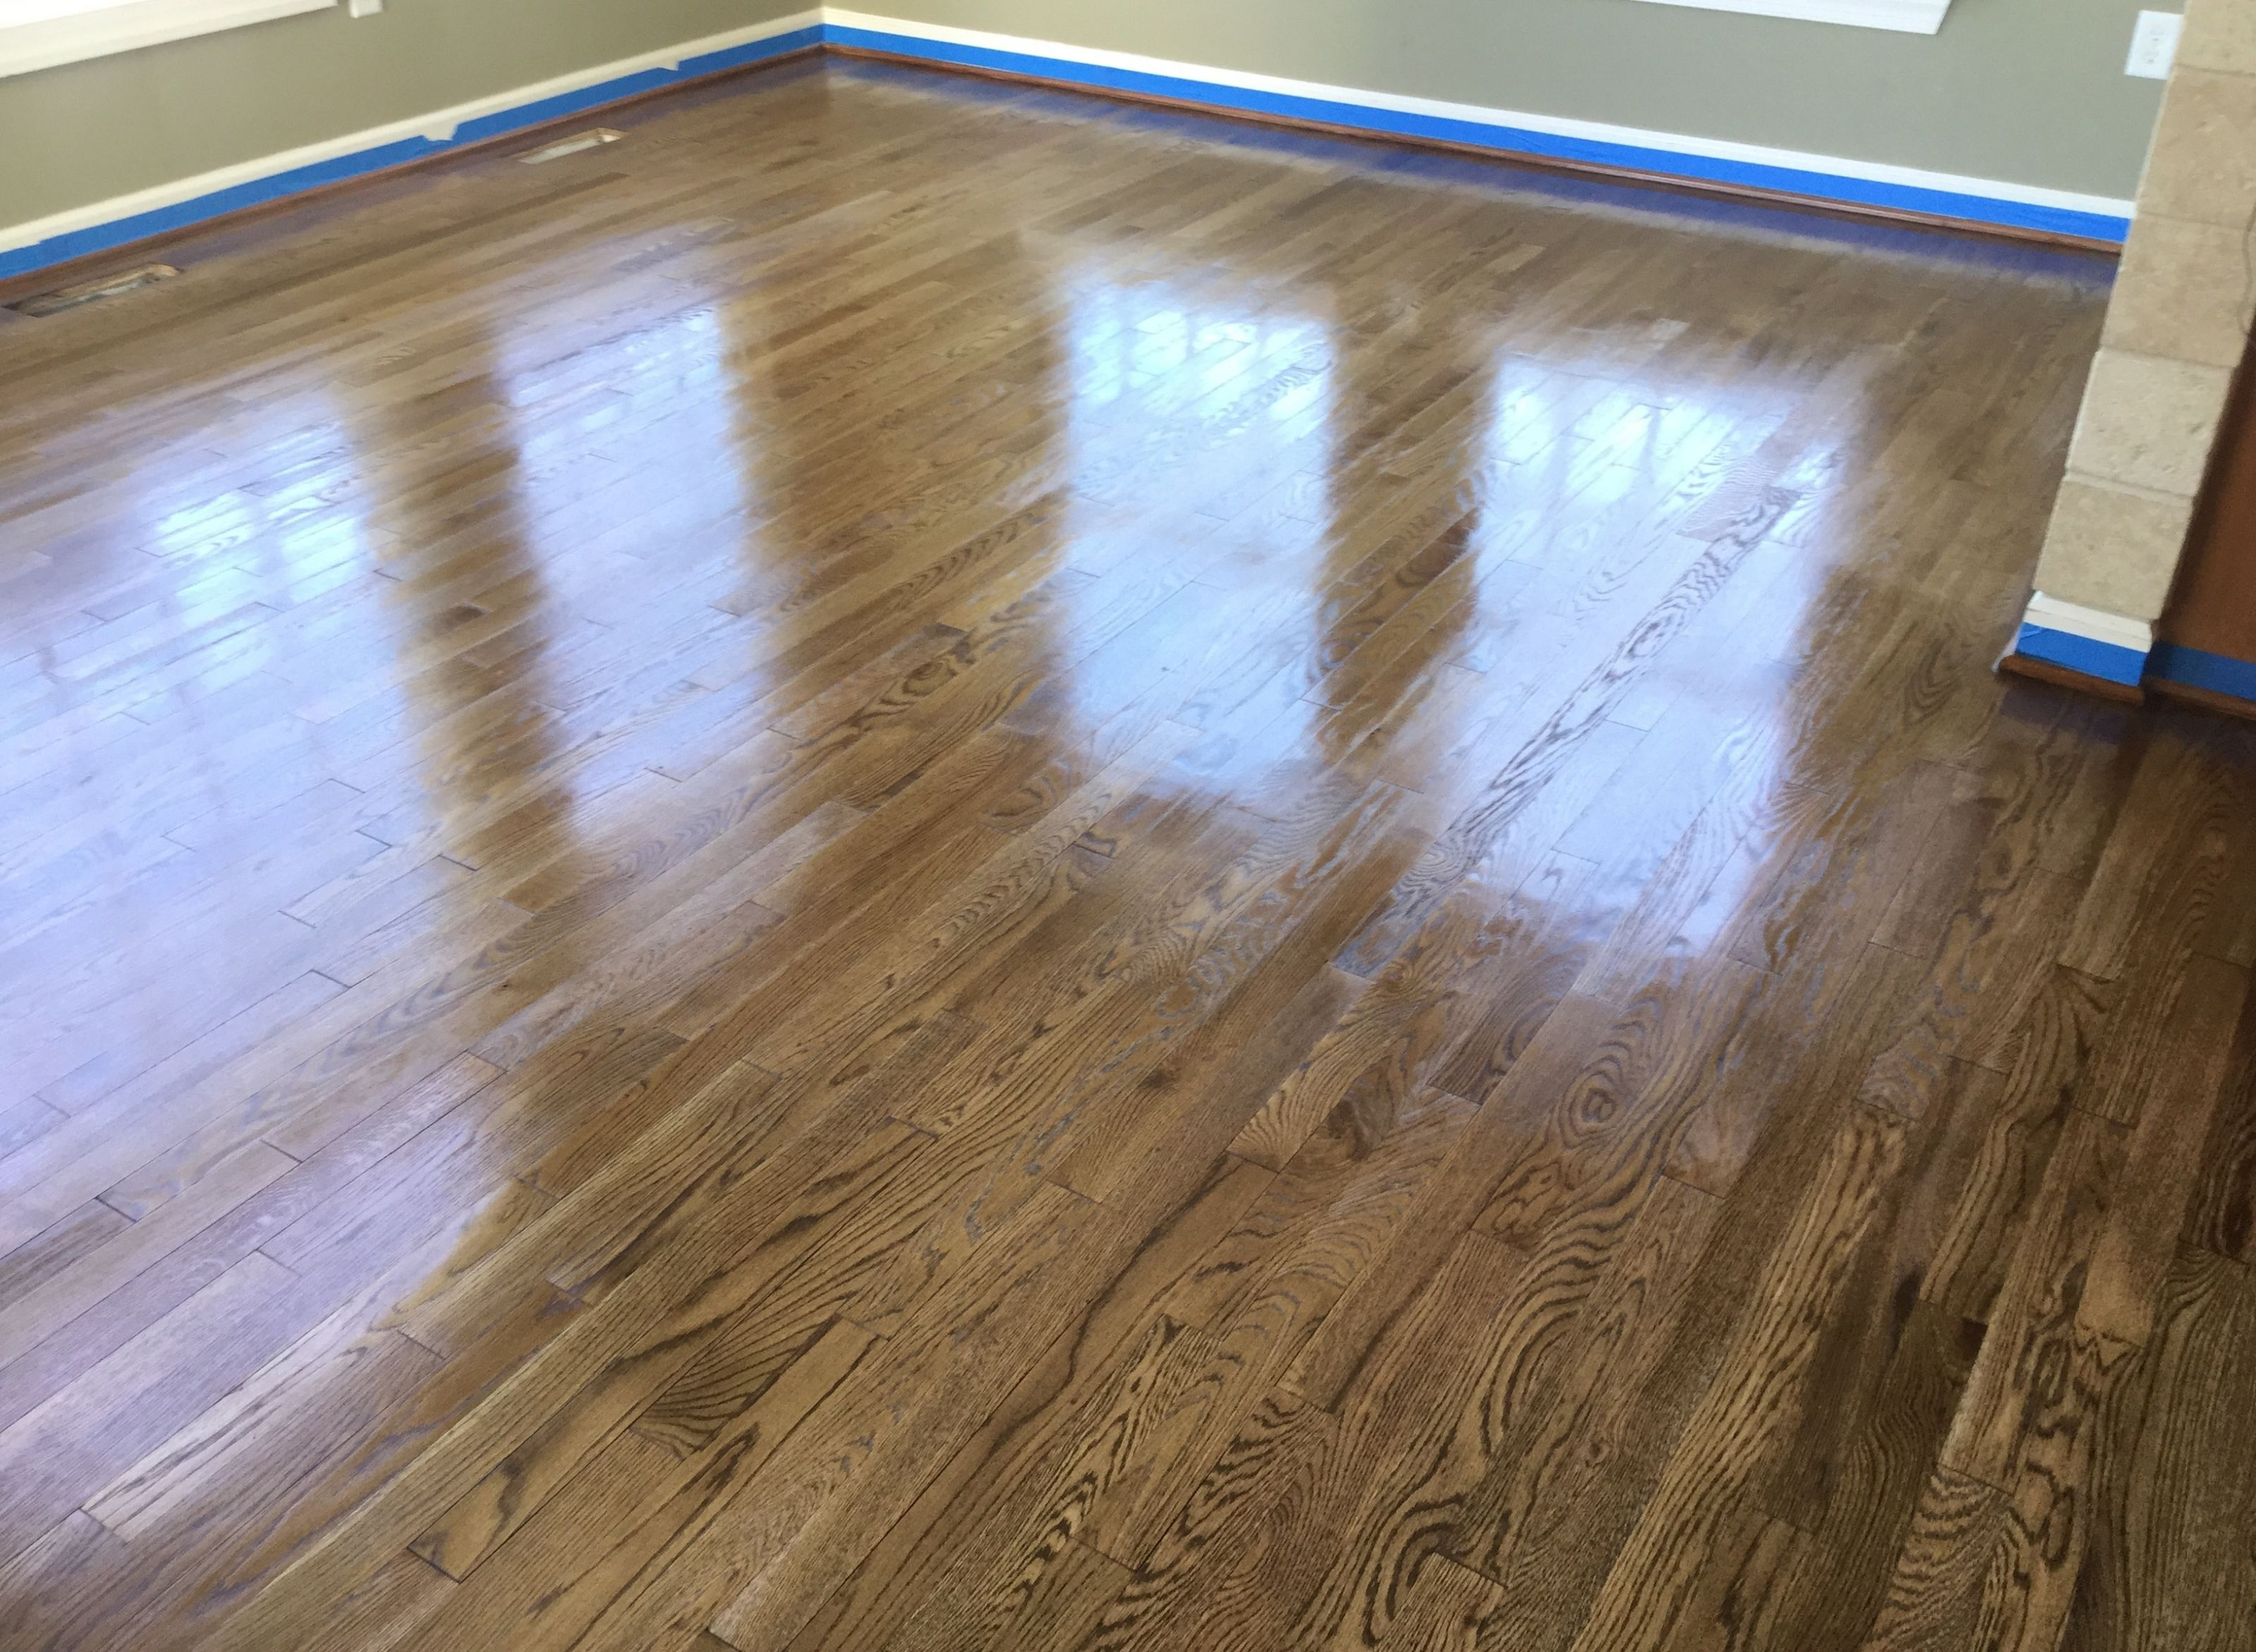 Carpet Cleaner Rental Lowes Images Chemdry